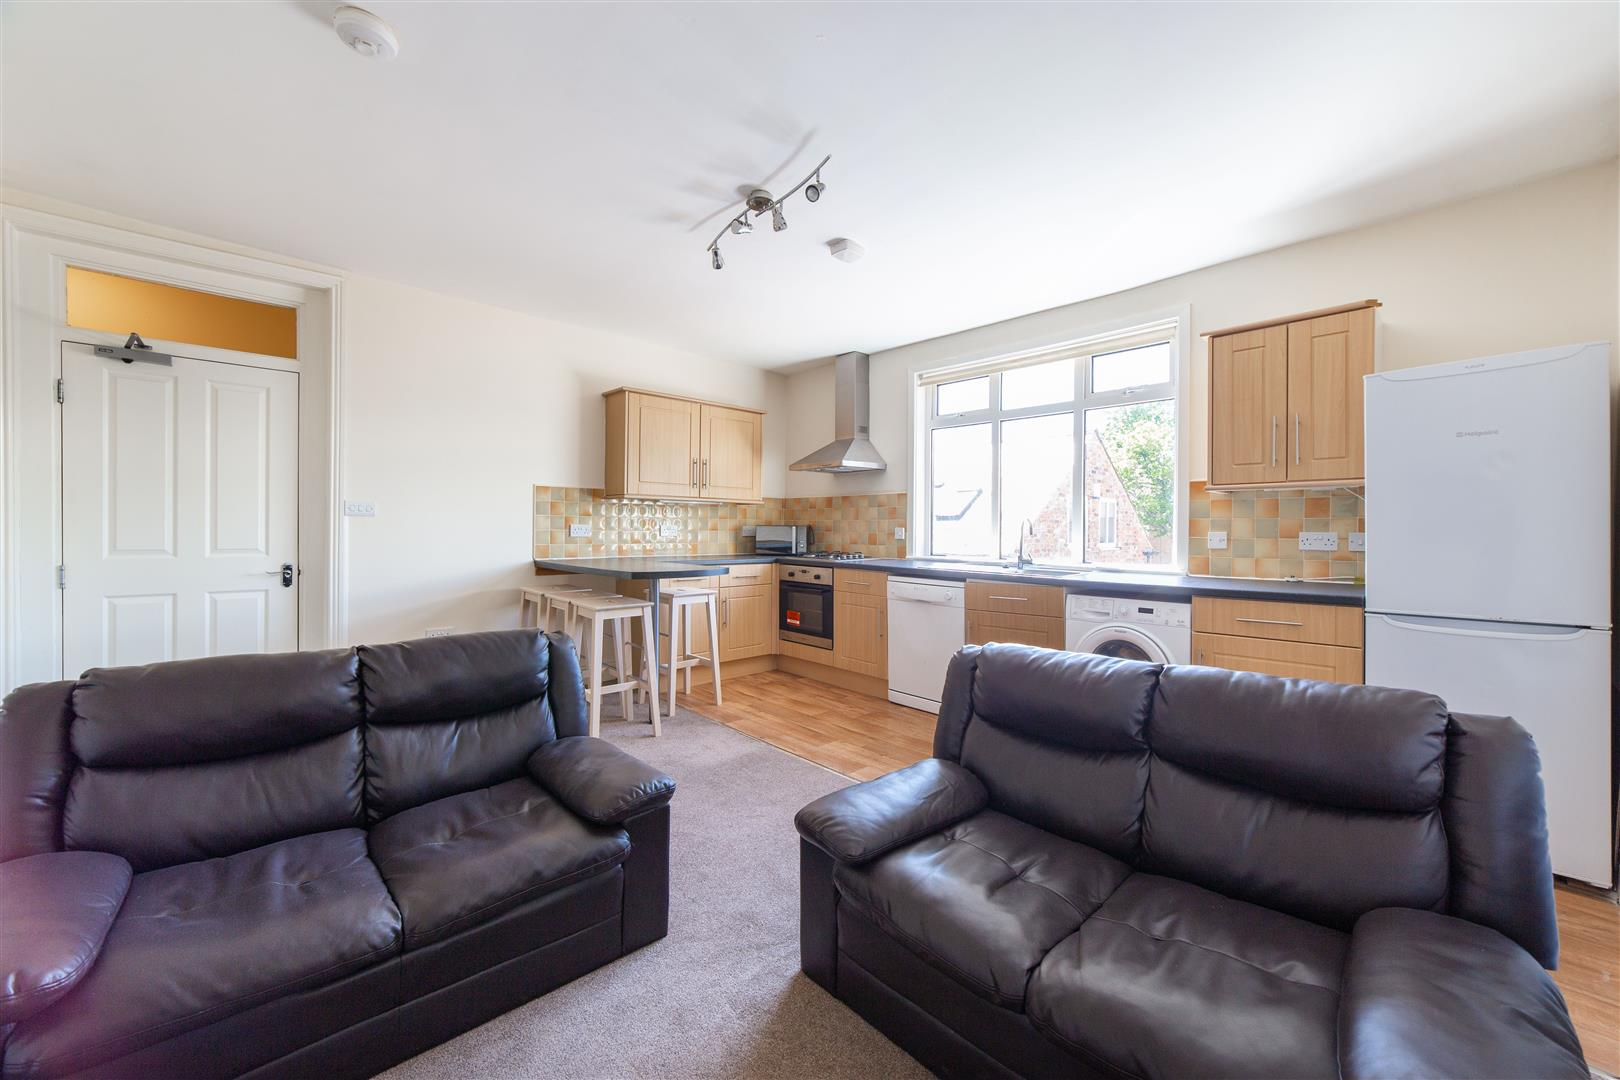 4 bed apartment to rent in Heaton Place, Heaton, NE6